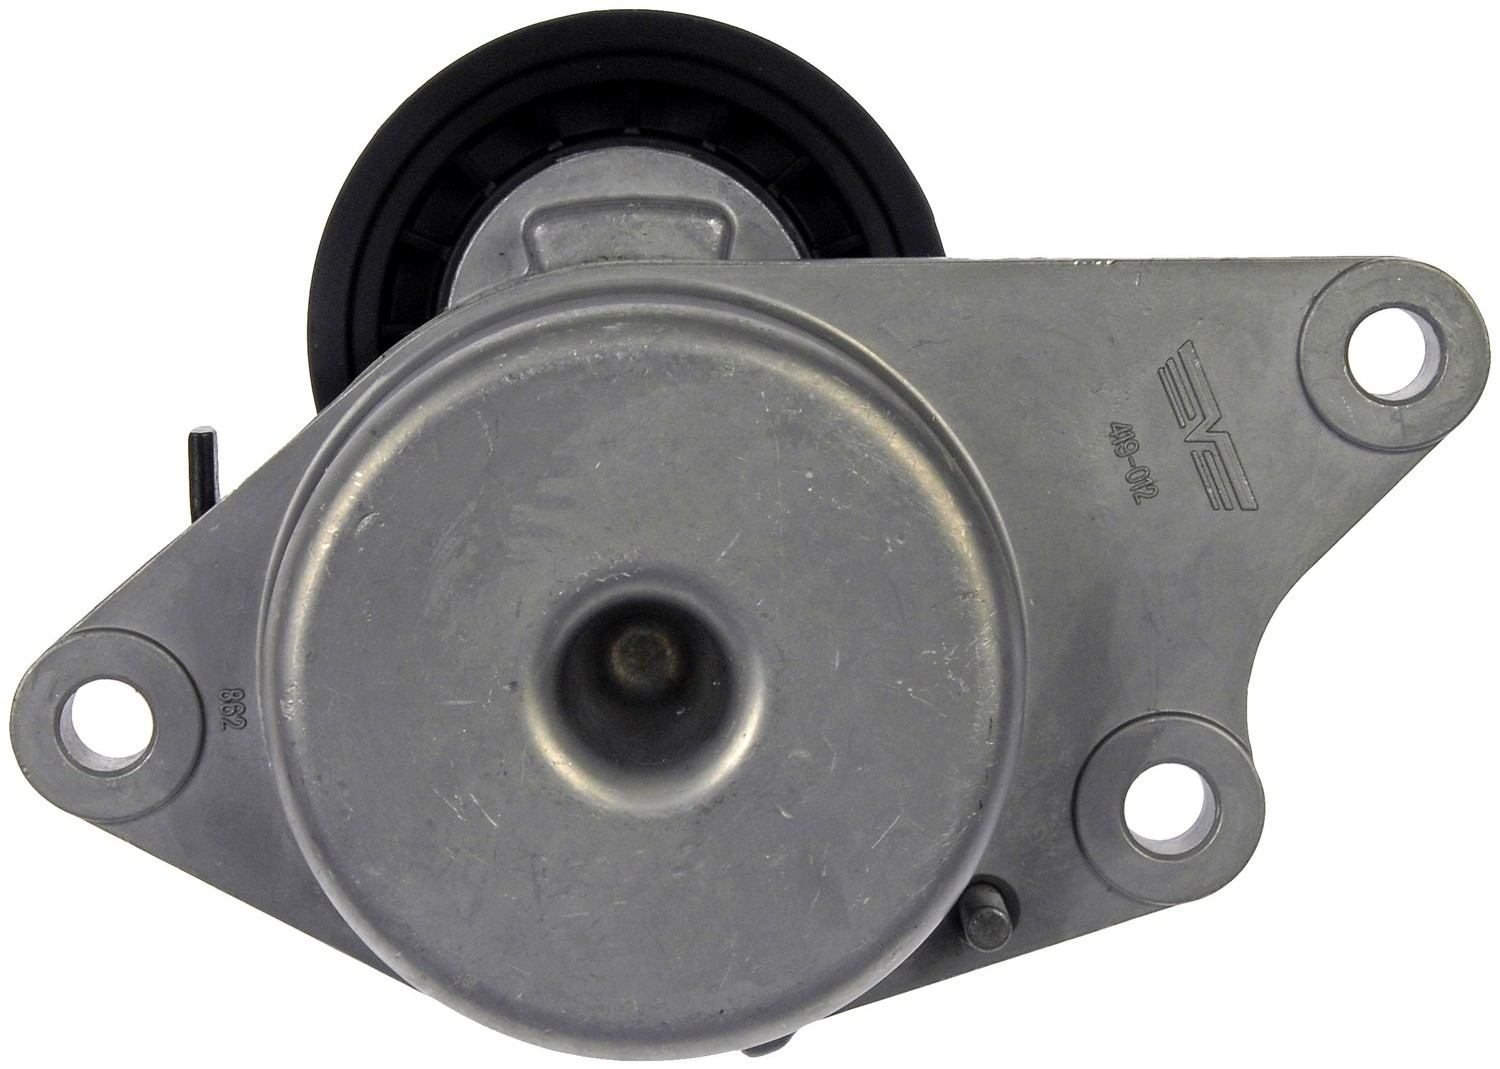 DORMAN - TECHOICE - Accessory Drive Belt Tensioner Assembly - DTC 419-012